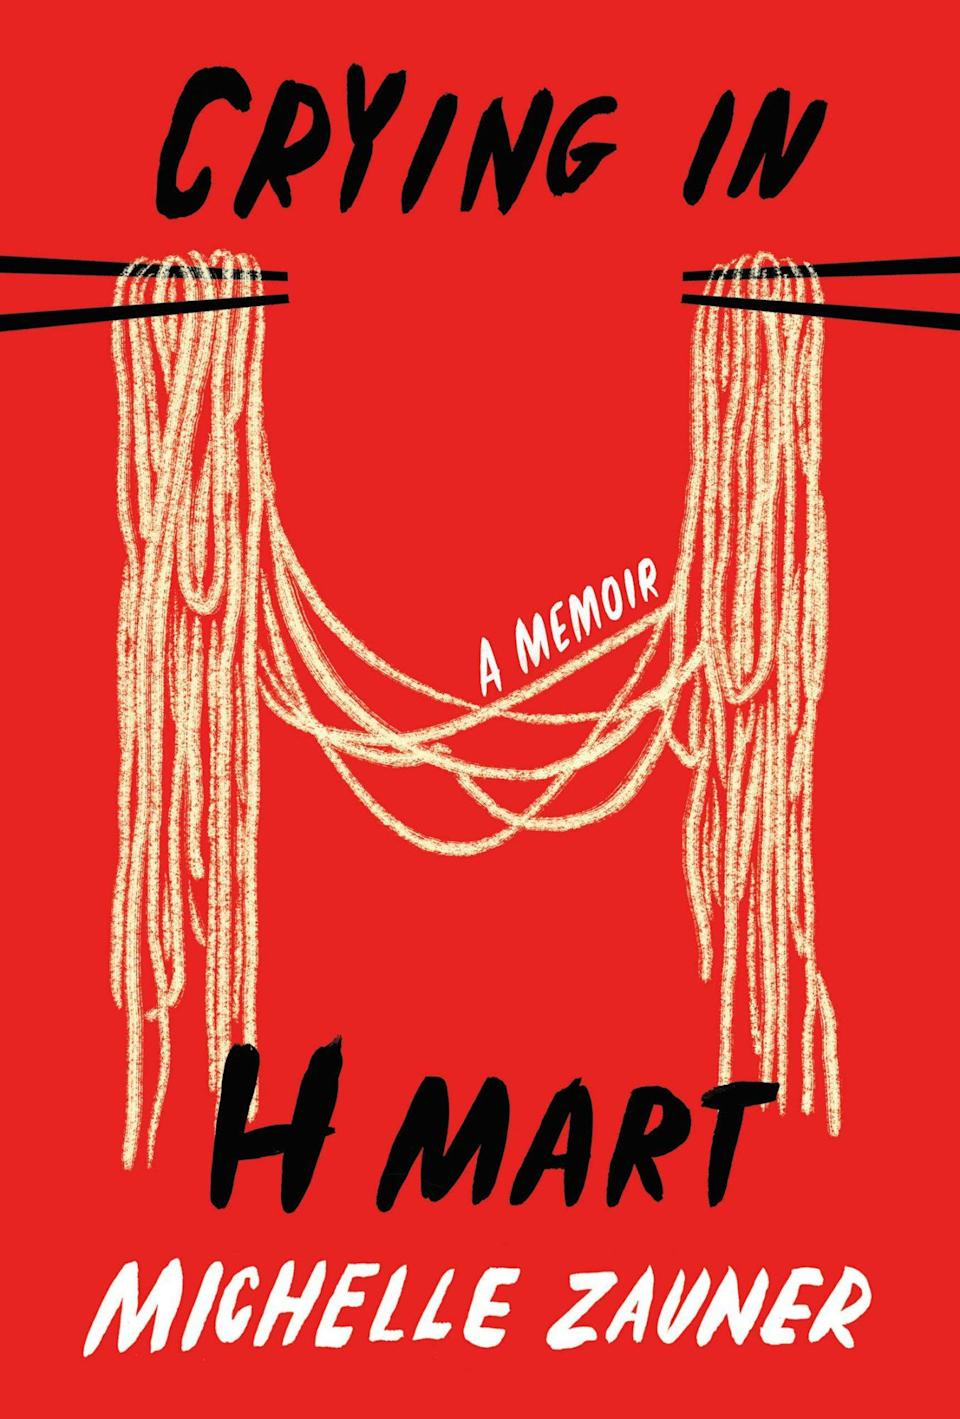 <p>The indie rock artist, who goes by the moniker Japanese Breakfast on stage, pens a stunning memoir about losing her mother to cancer and the soul-searching (and pilgrimages through Korean cooking) that came after. (April 20)</p>